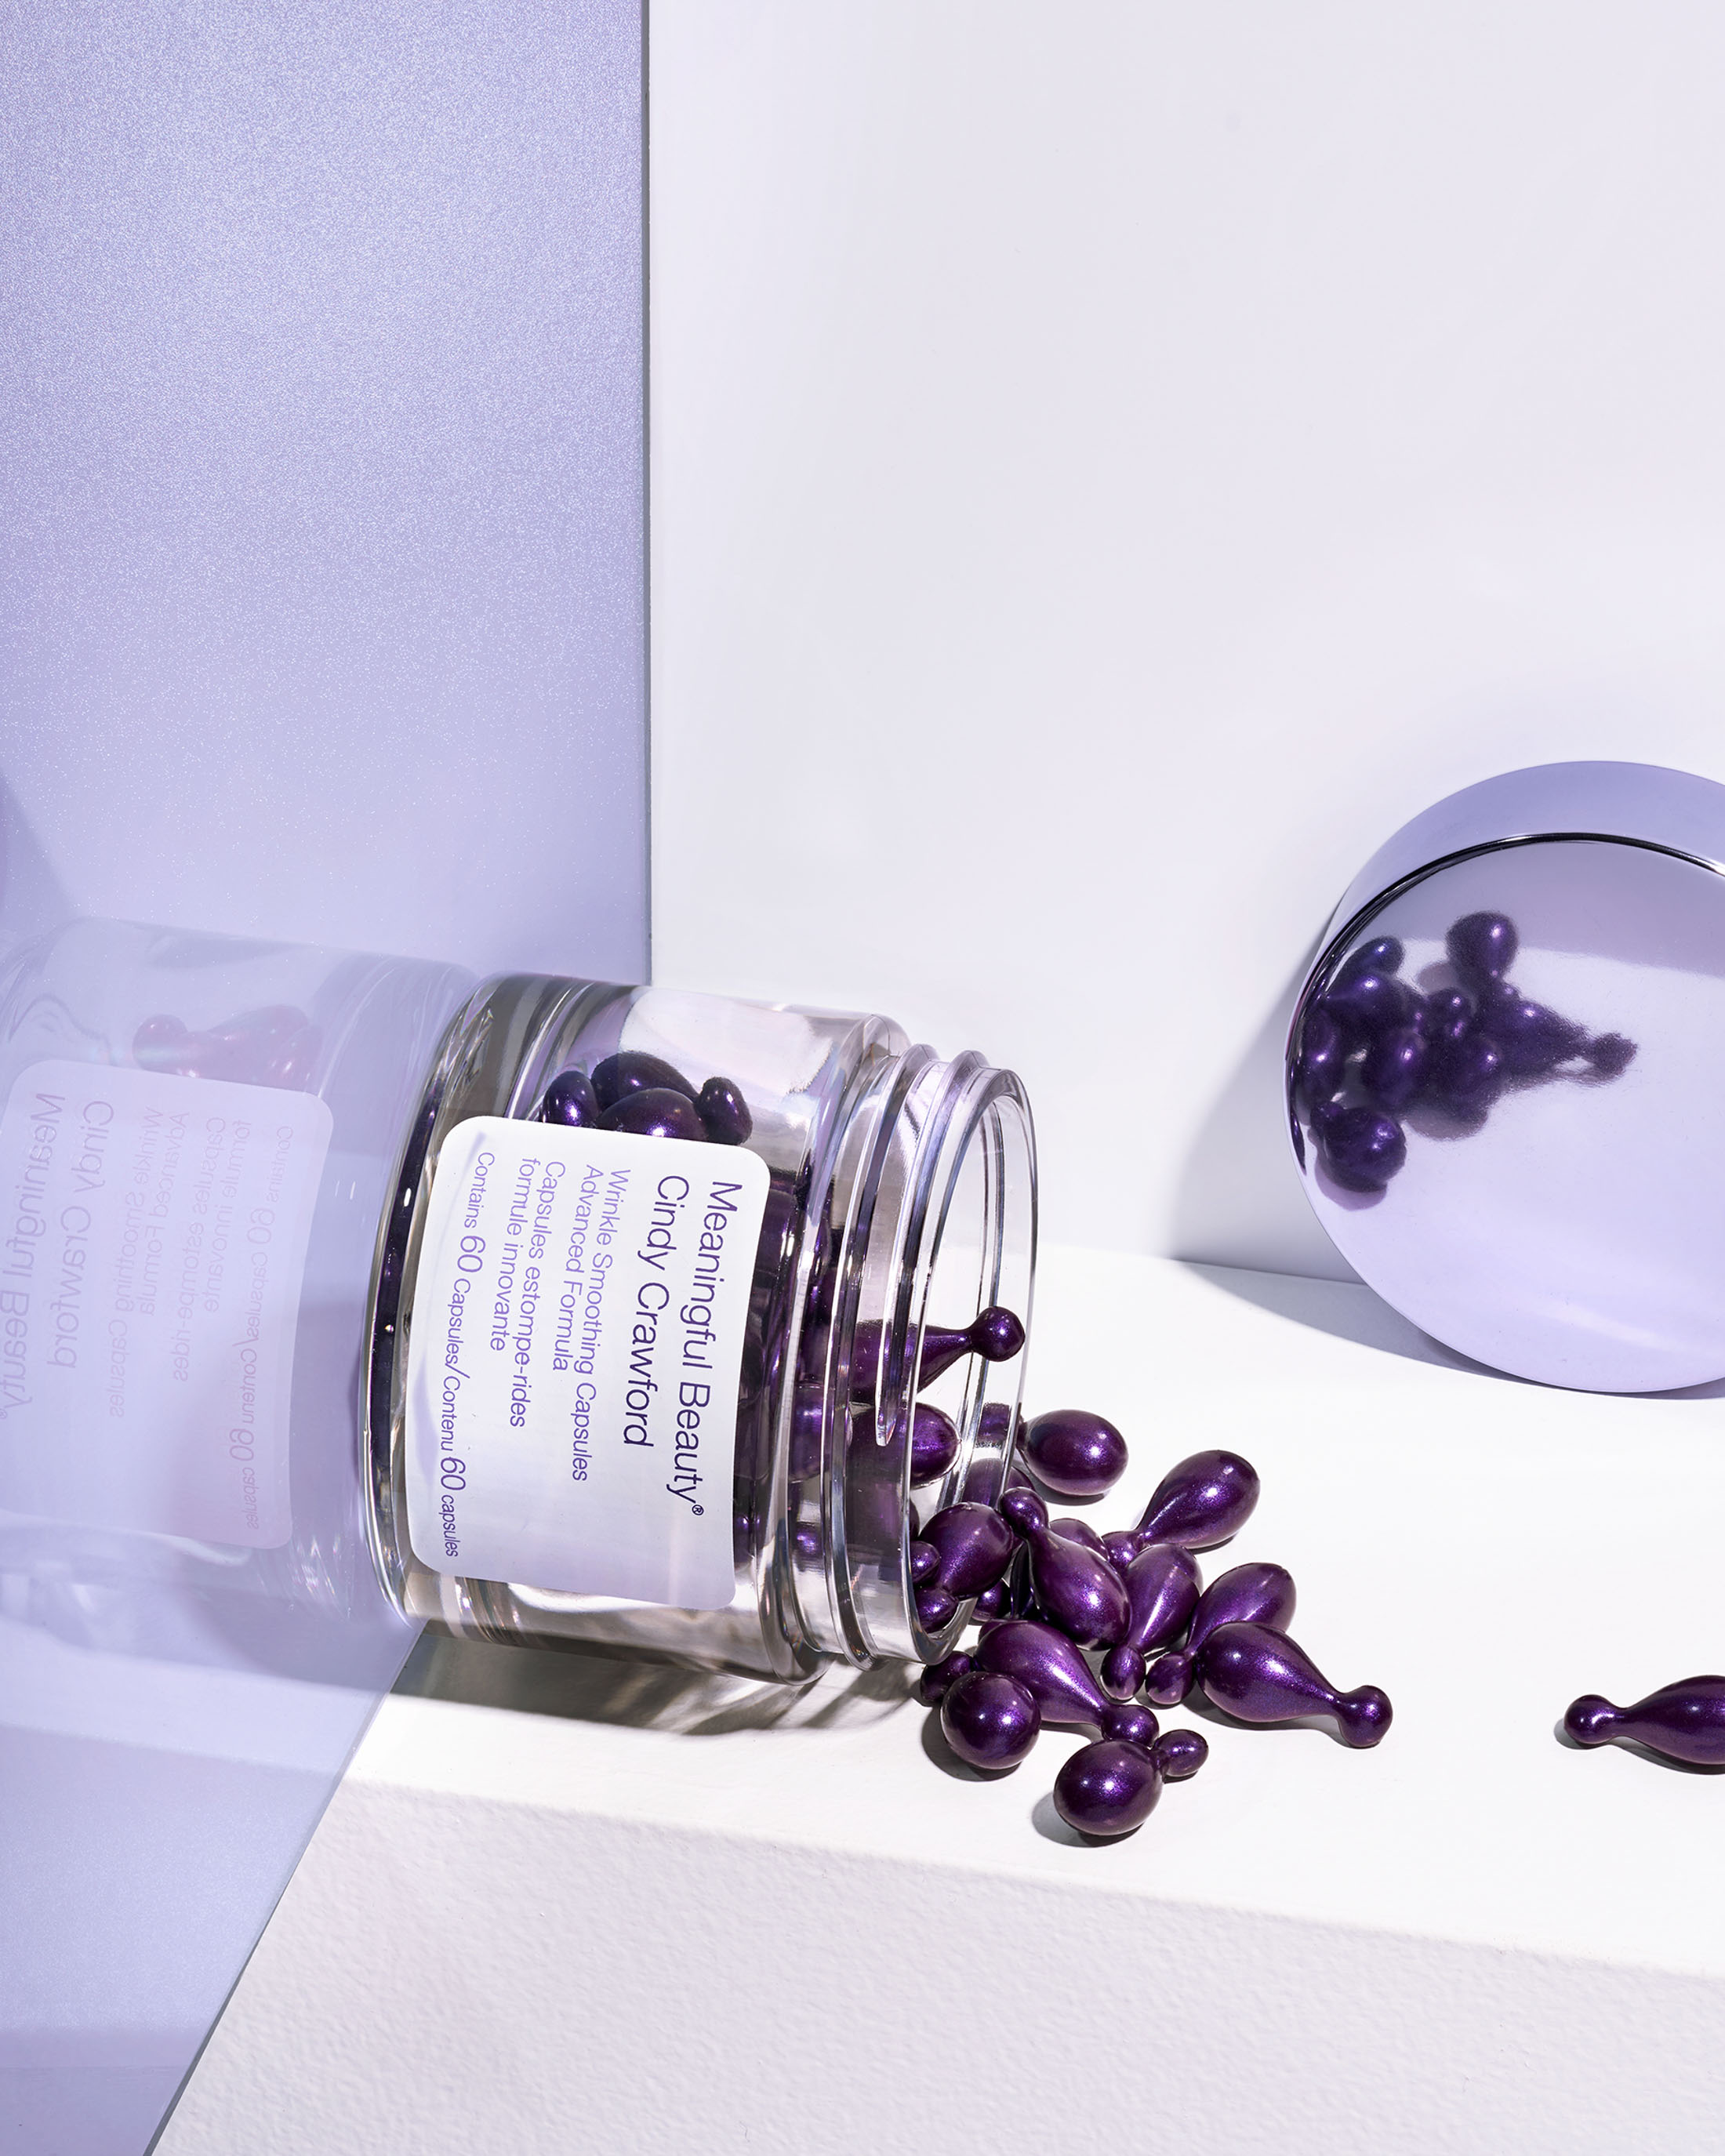 STAN Cindy Crawford Wrinkle Capsule Product Spill Still Life